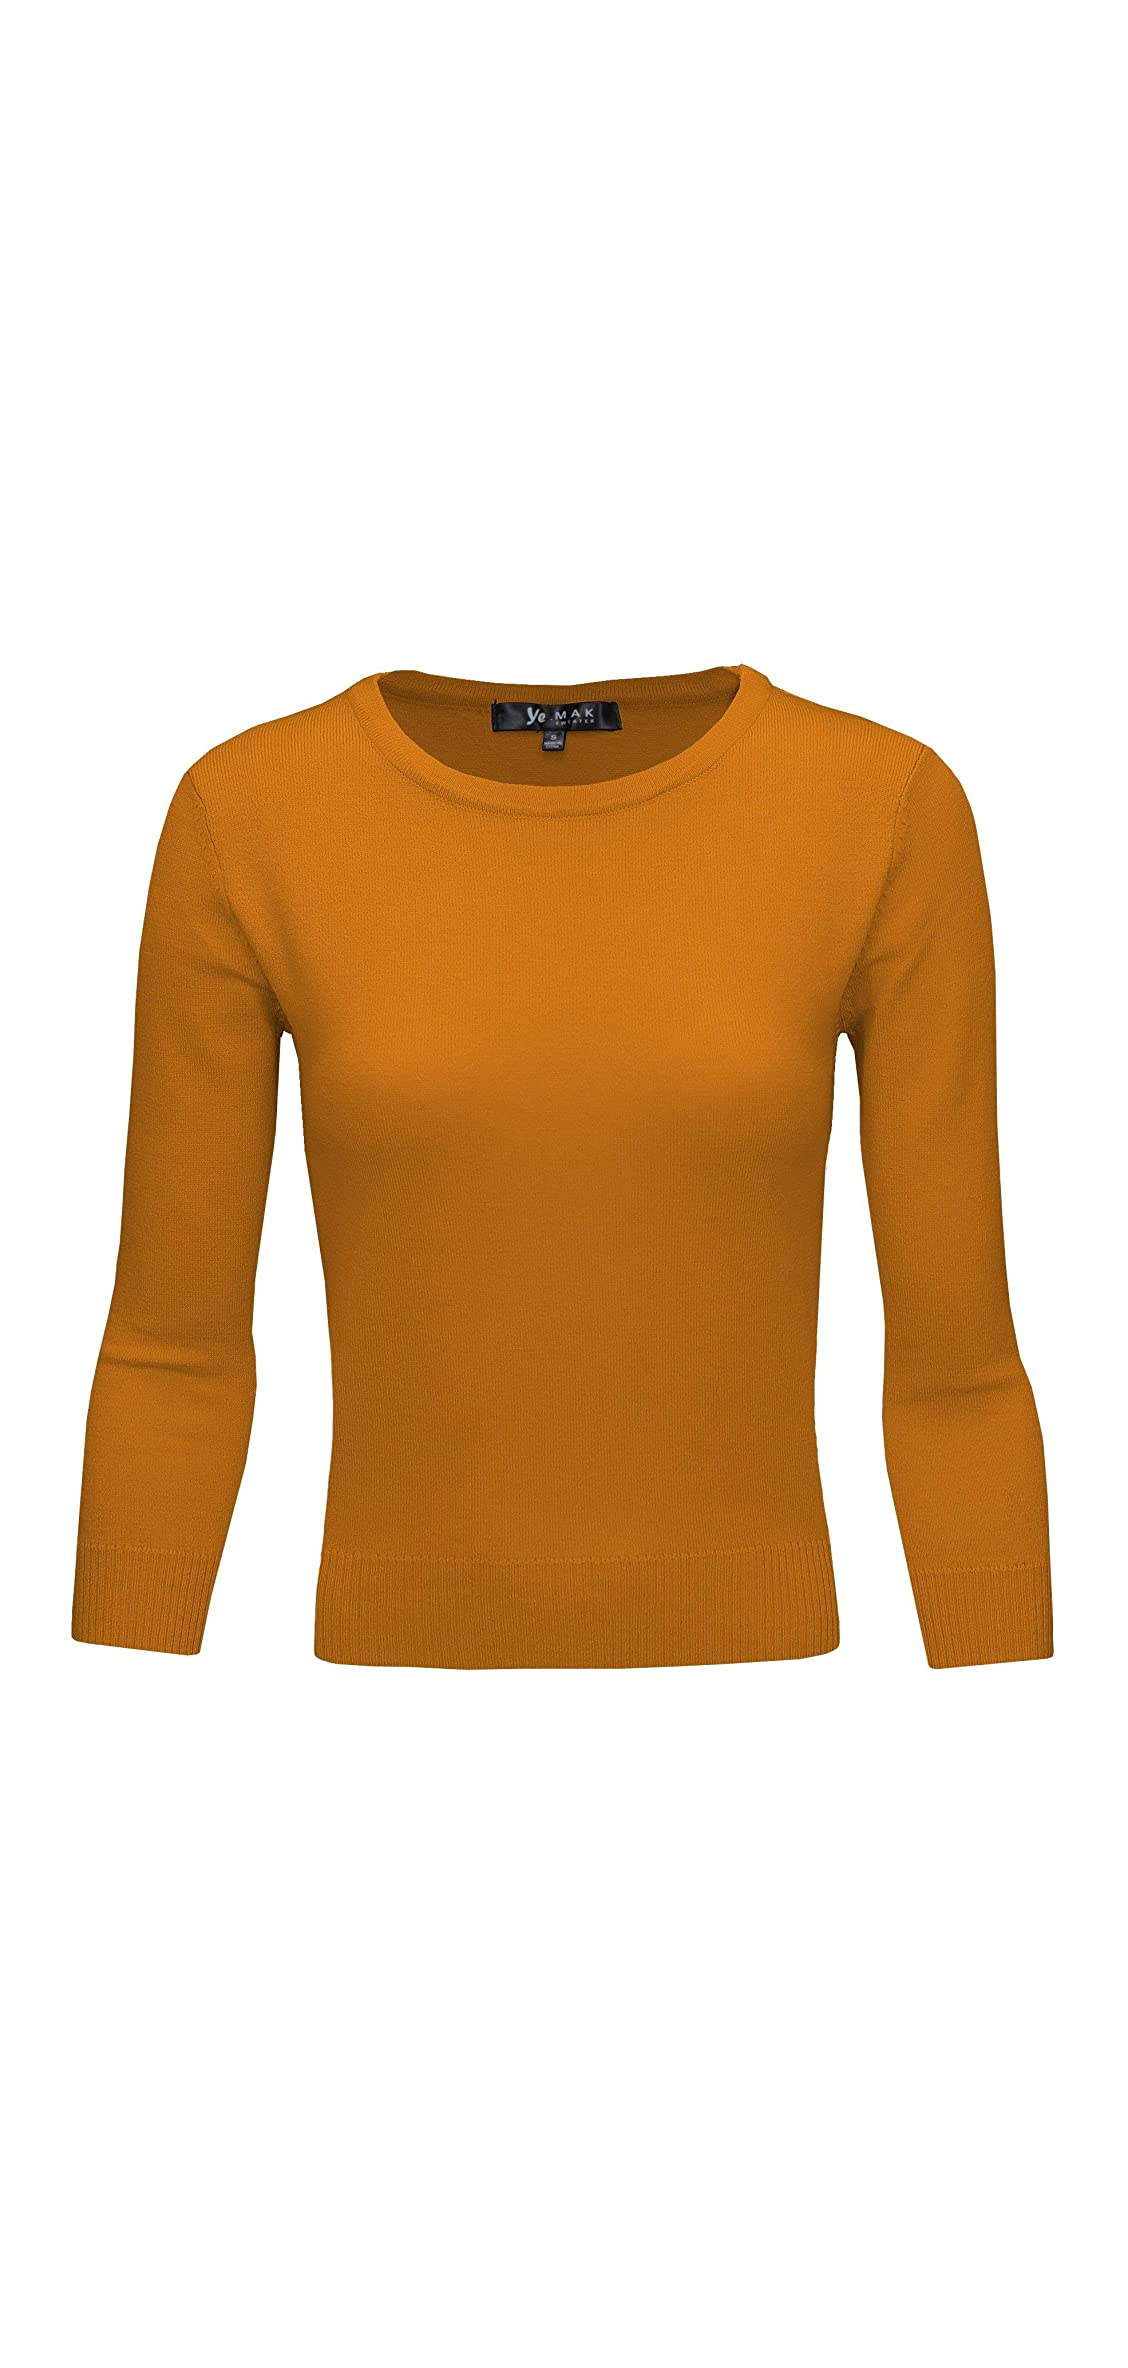 Women's / Sleeve Crewneck Lightweight Basic Casual Knit